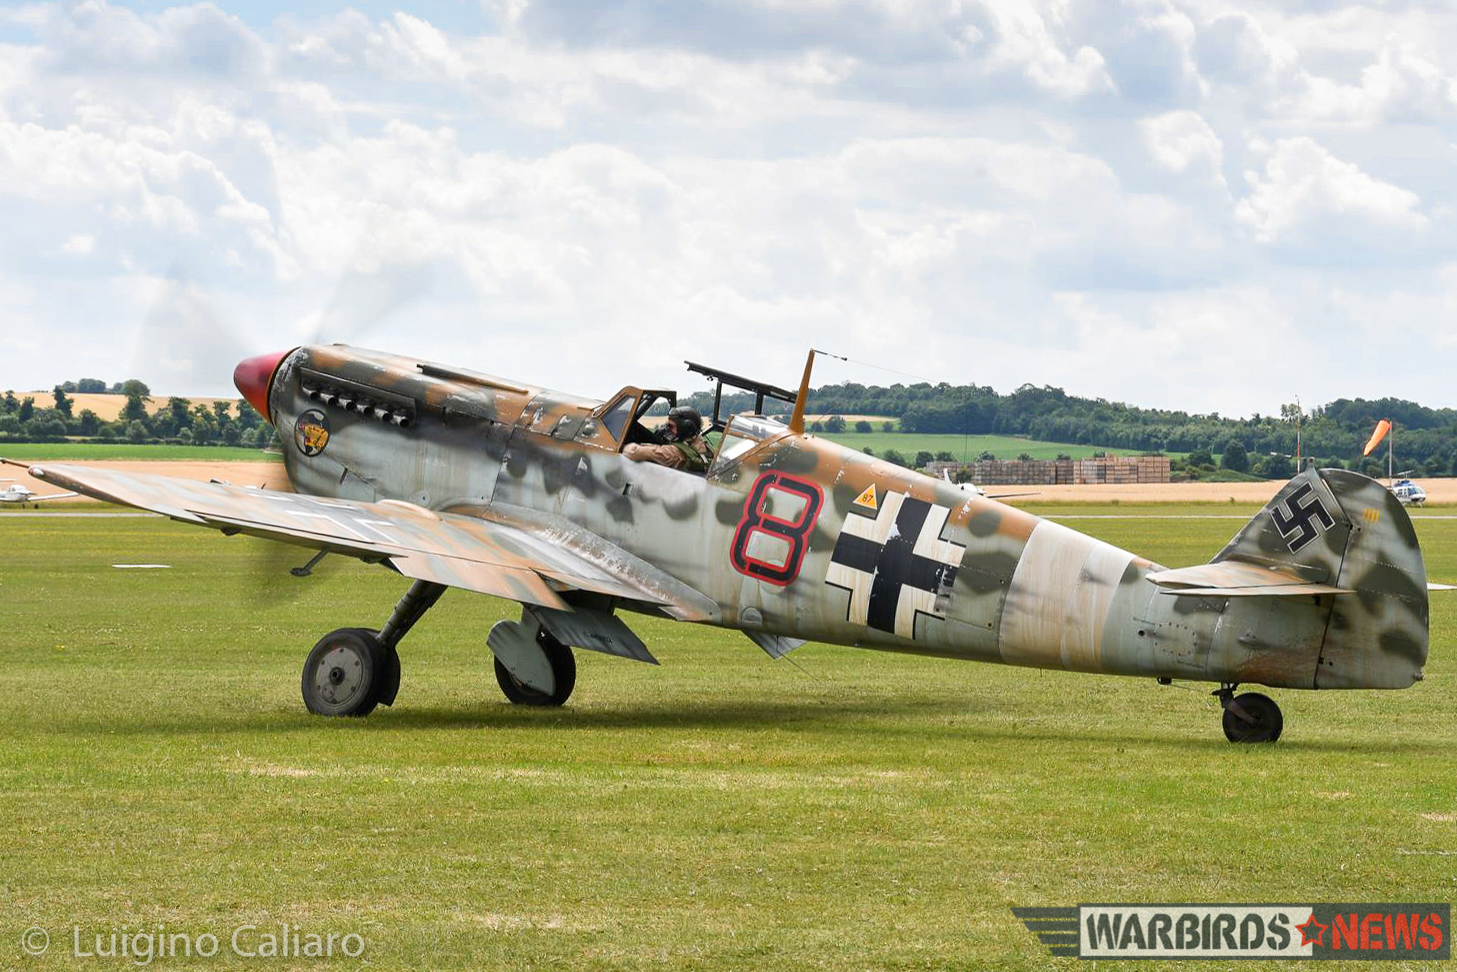 ARCo's Hispano Buchon mocked up in desert cammo as a JG27 Bf 109E. The paint is water soluble. (photo by Luigino Caliaro) (photo by Luigino Caliaro)